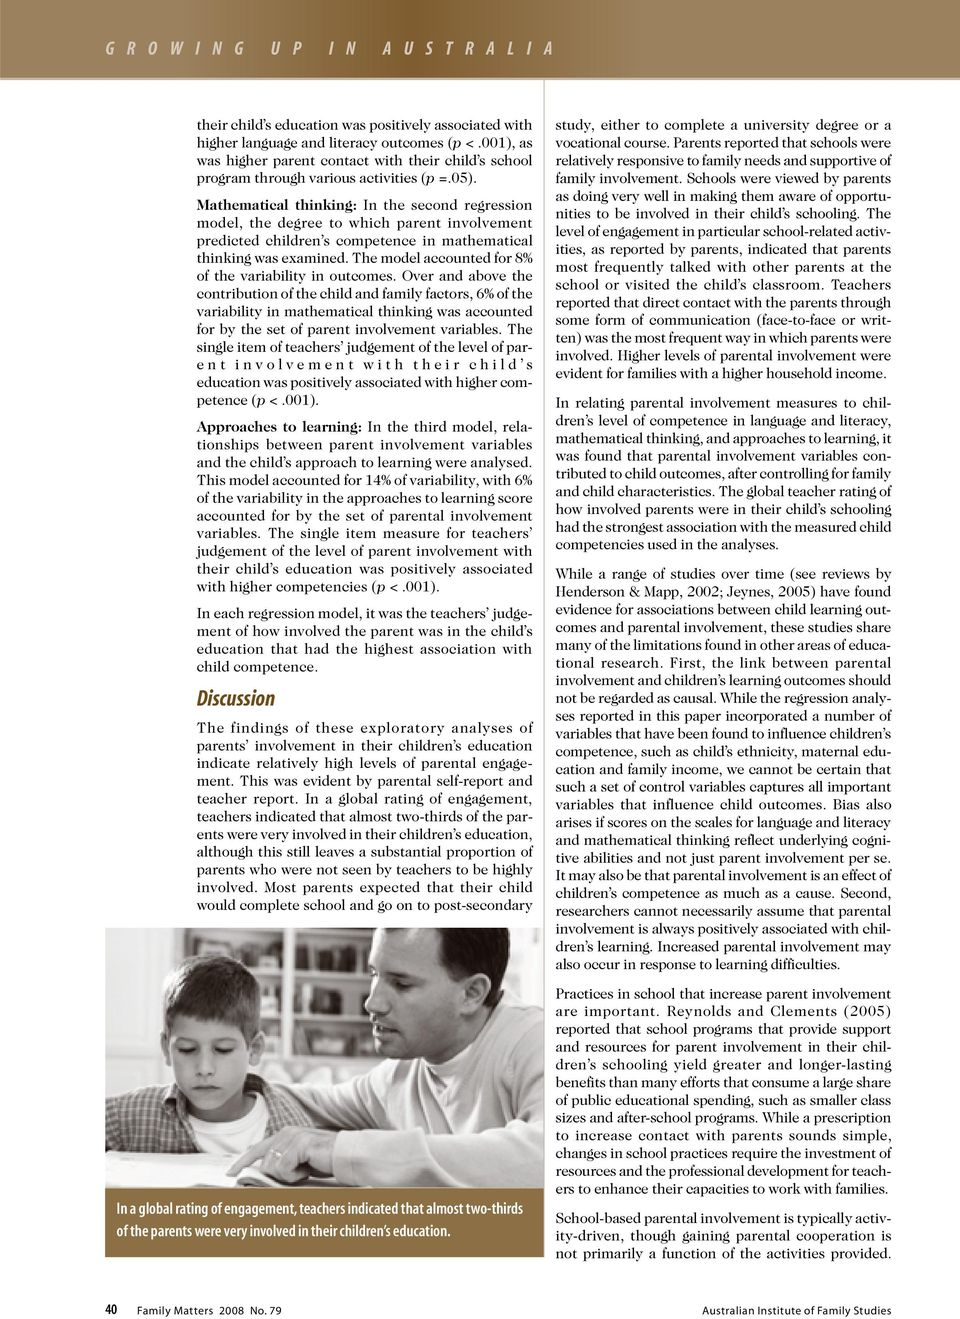 Mathematical thinking: In the second regression model, the degree to which parent involvement predicted children s competence in mathematical thinking was examined.